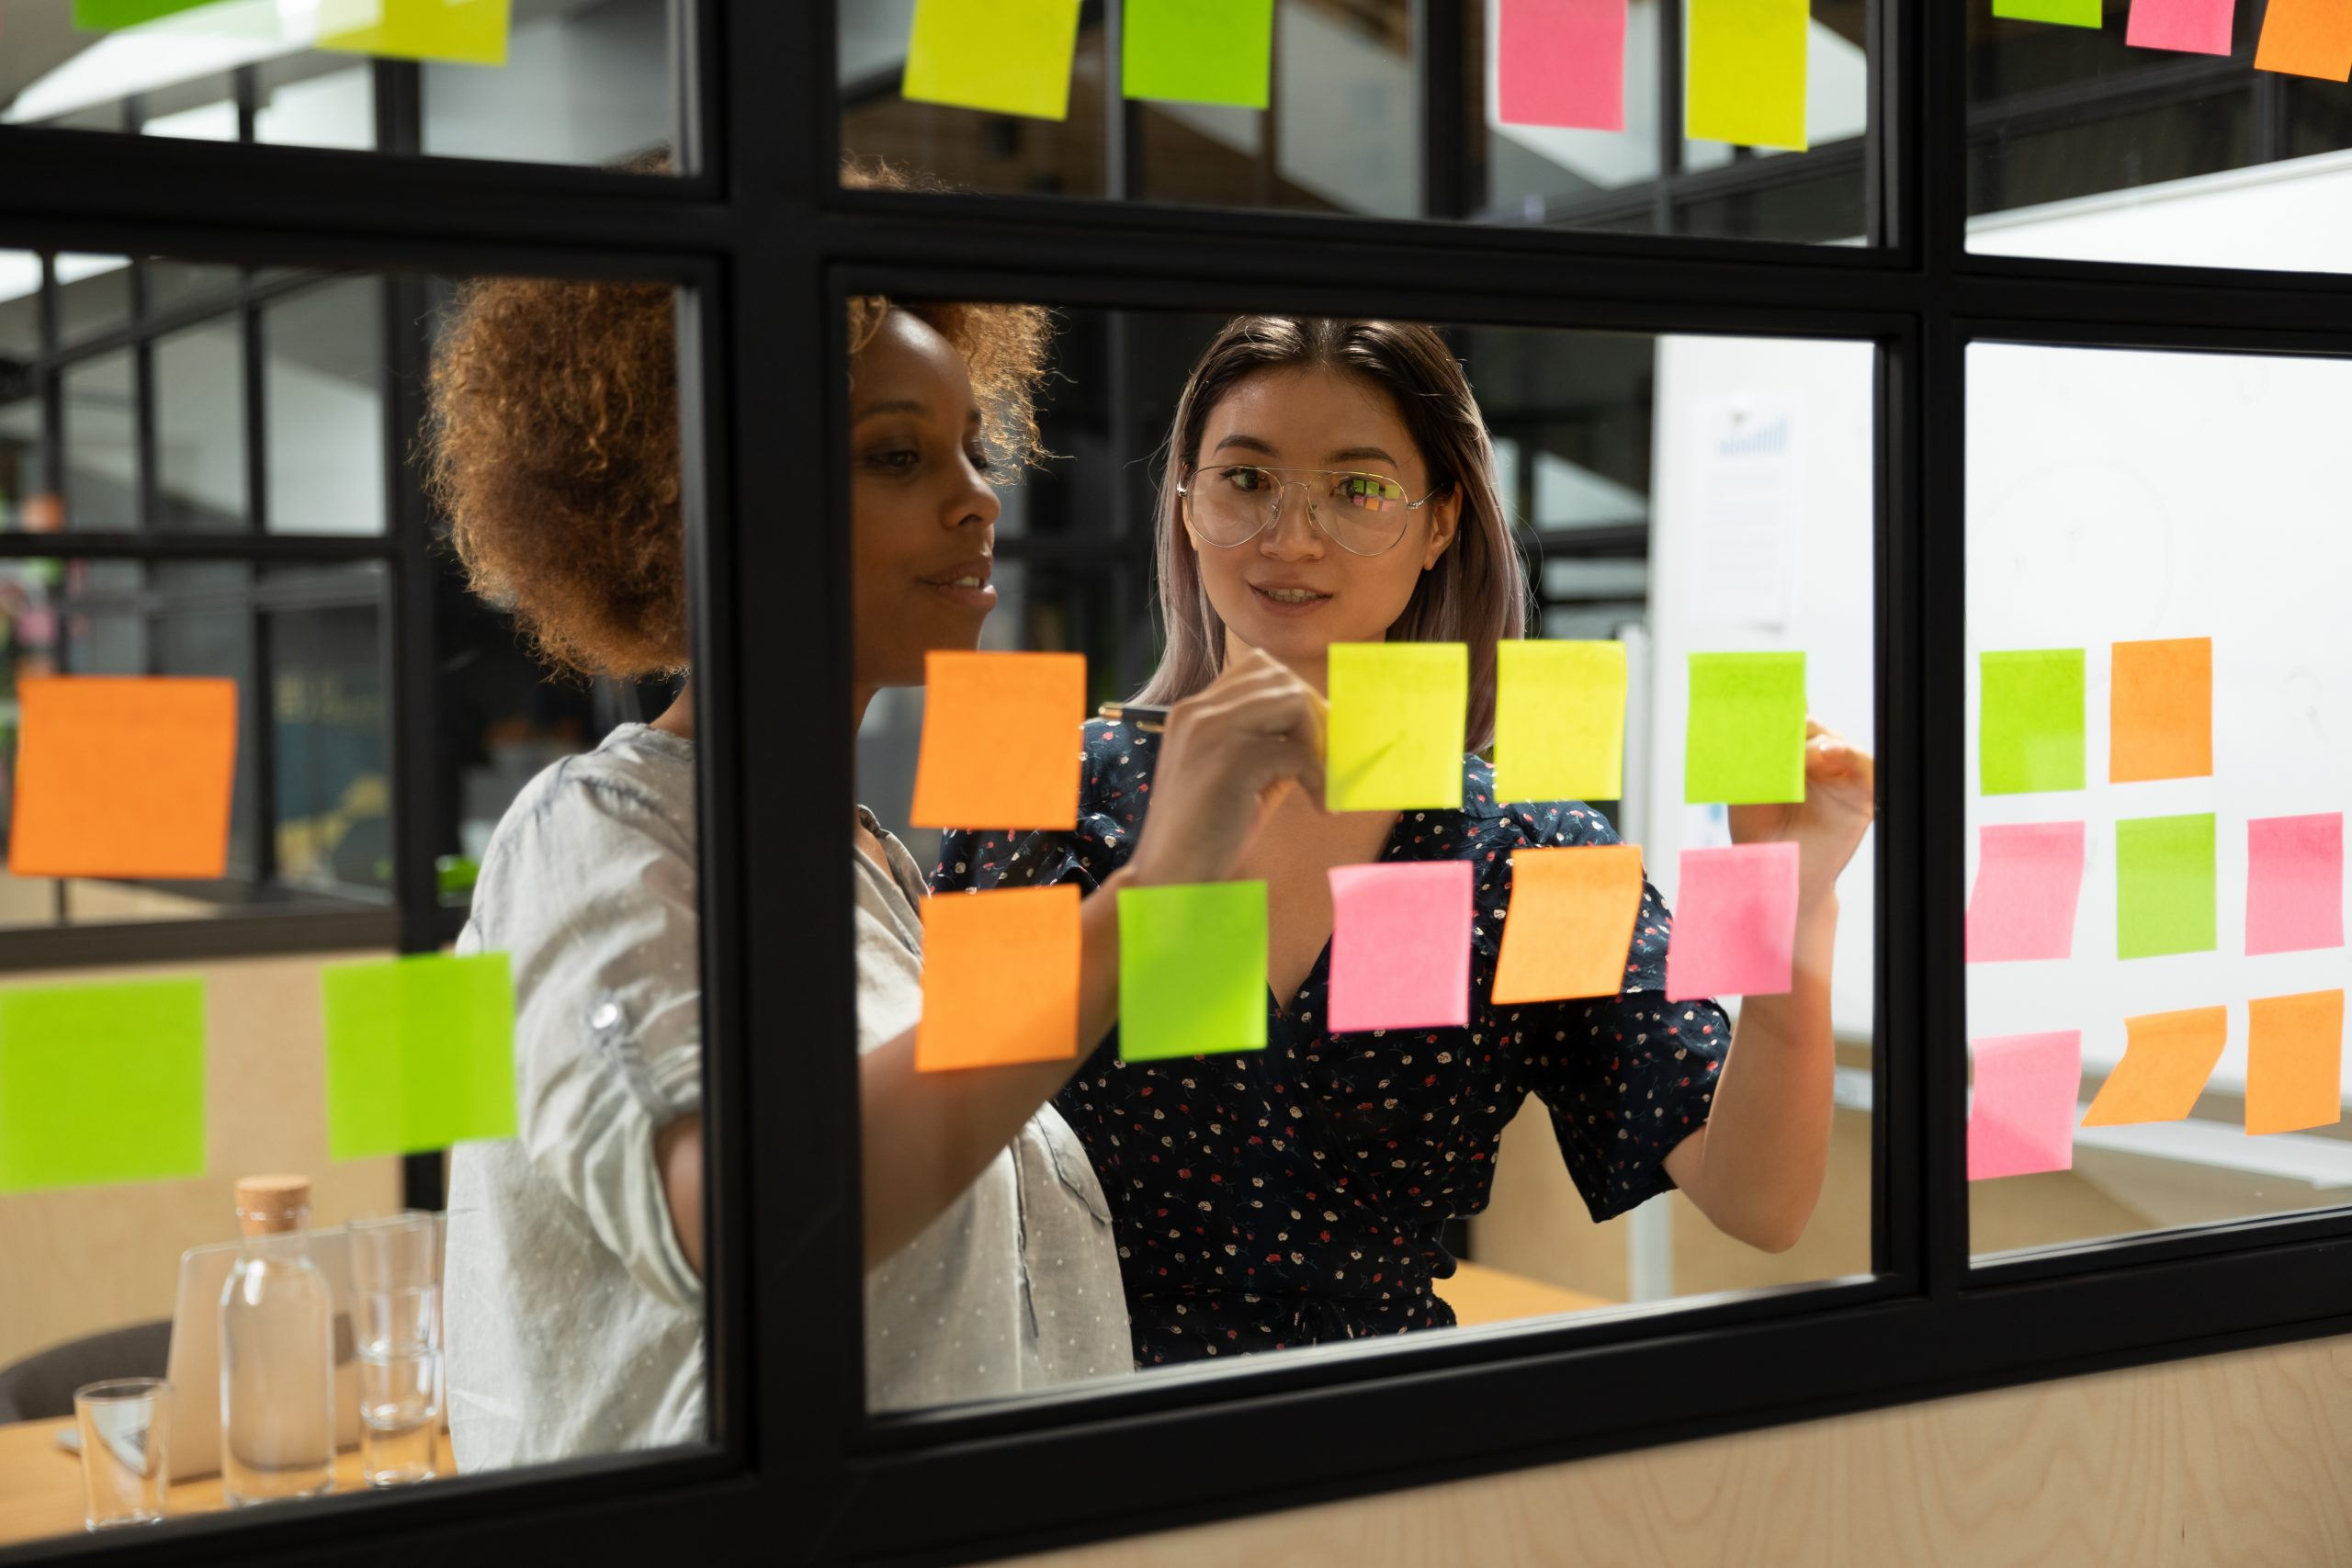 two women in front of Kanban